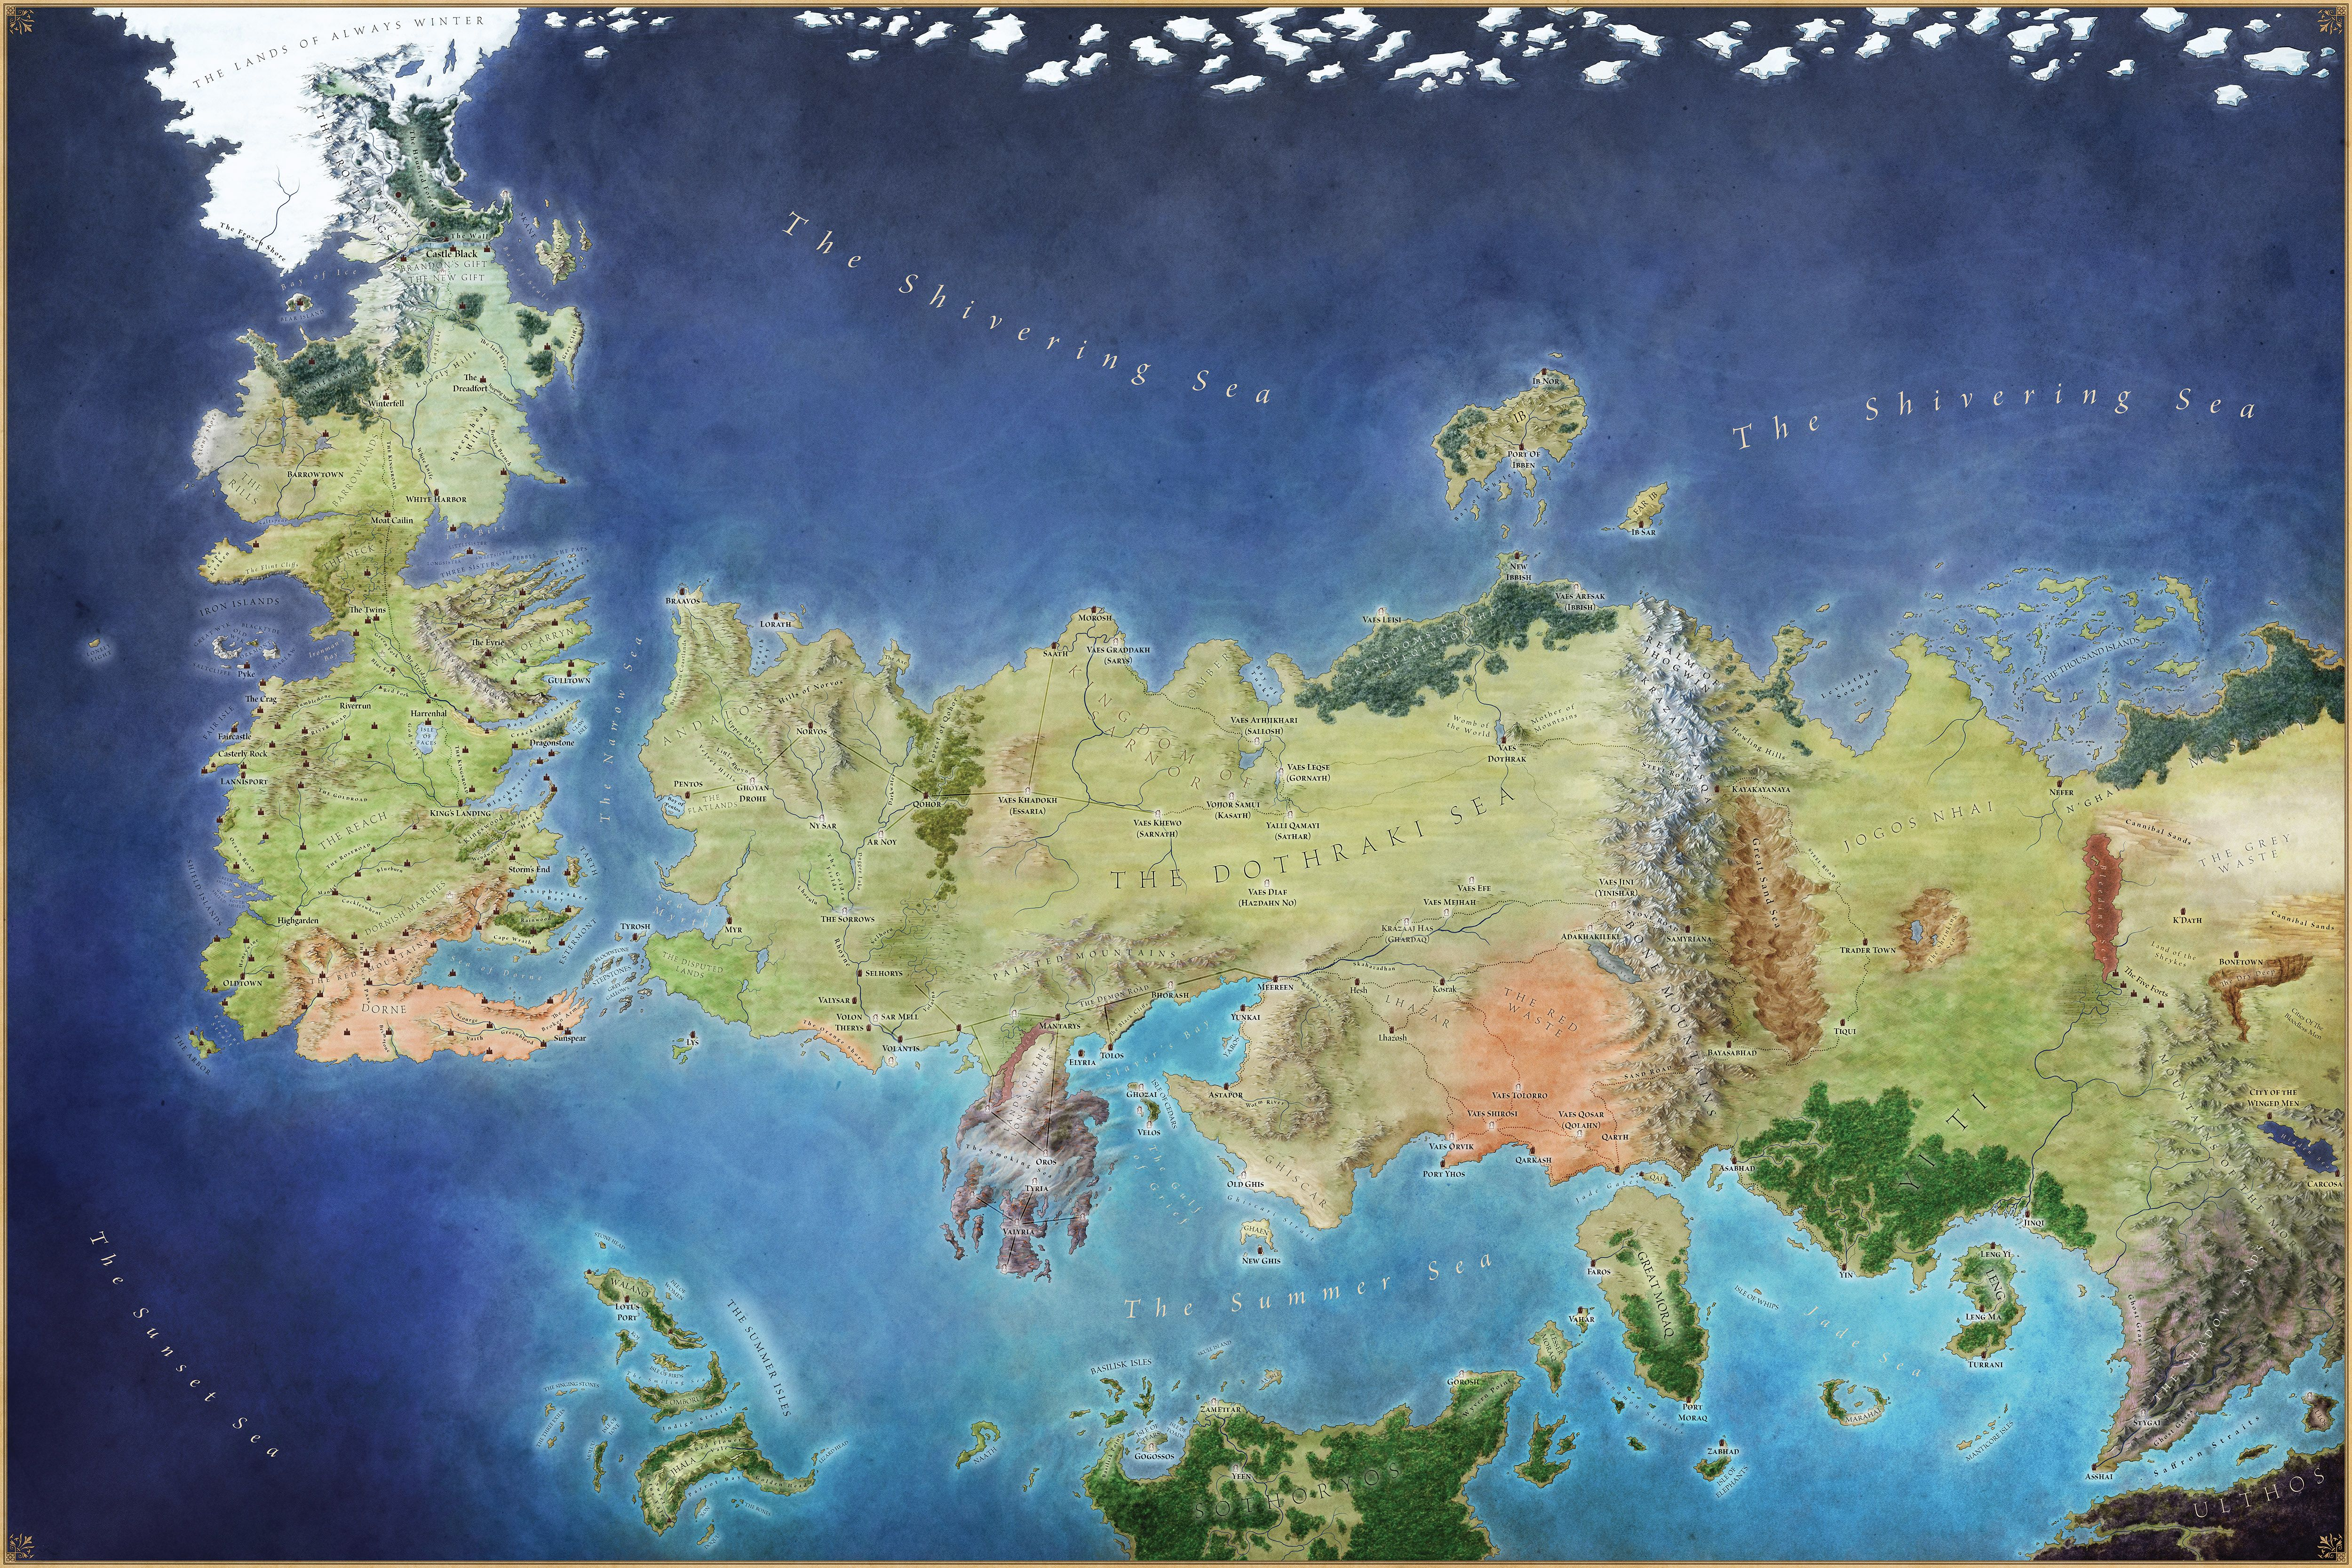 ASOIAF/GoT Map of the known world... open in new tab for